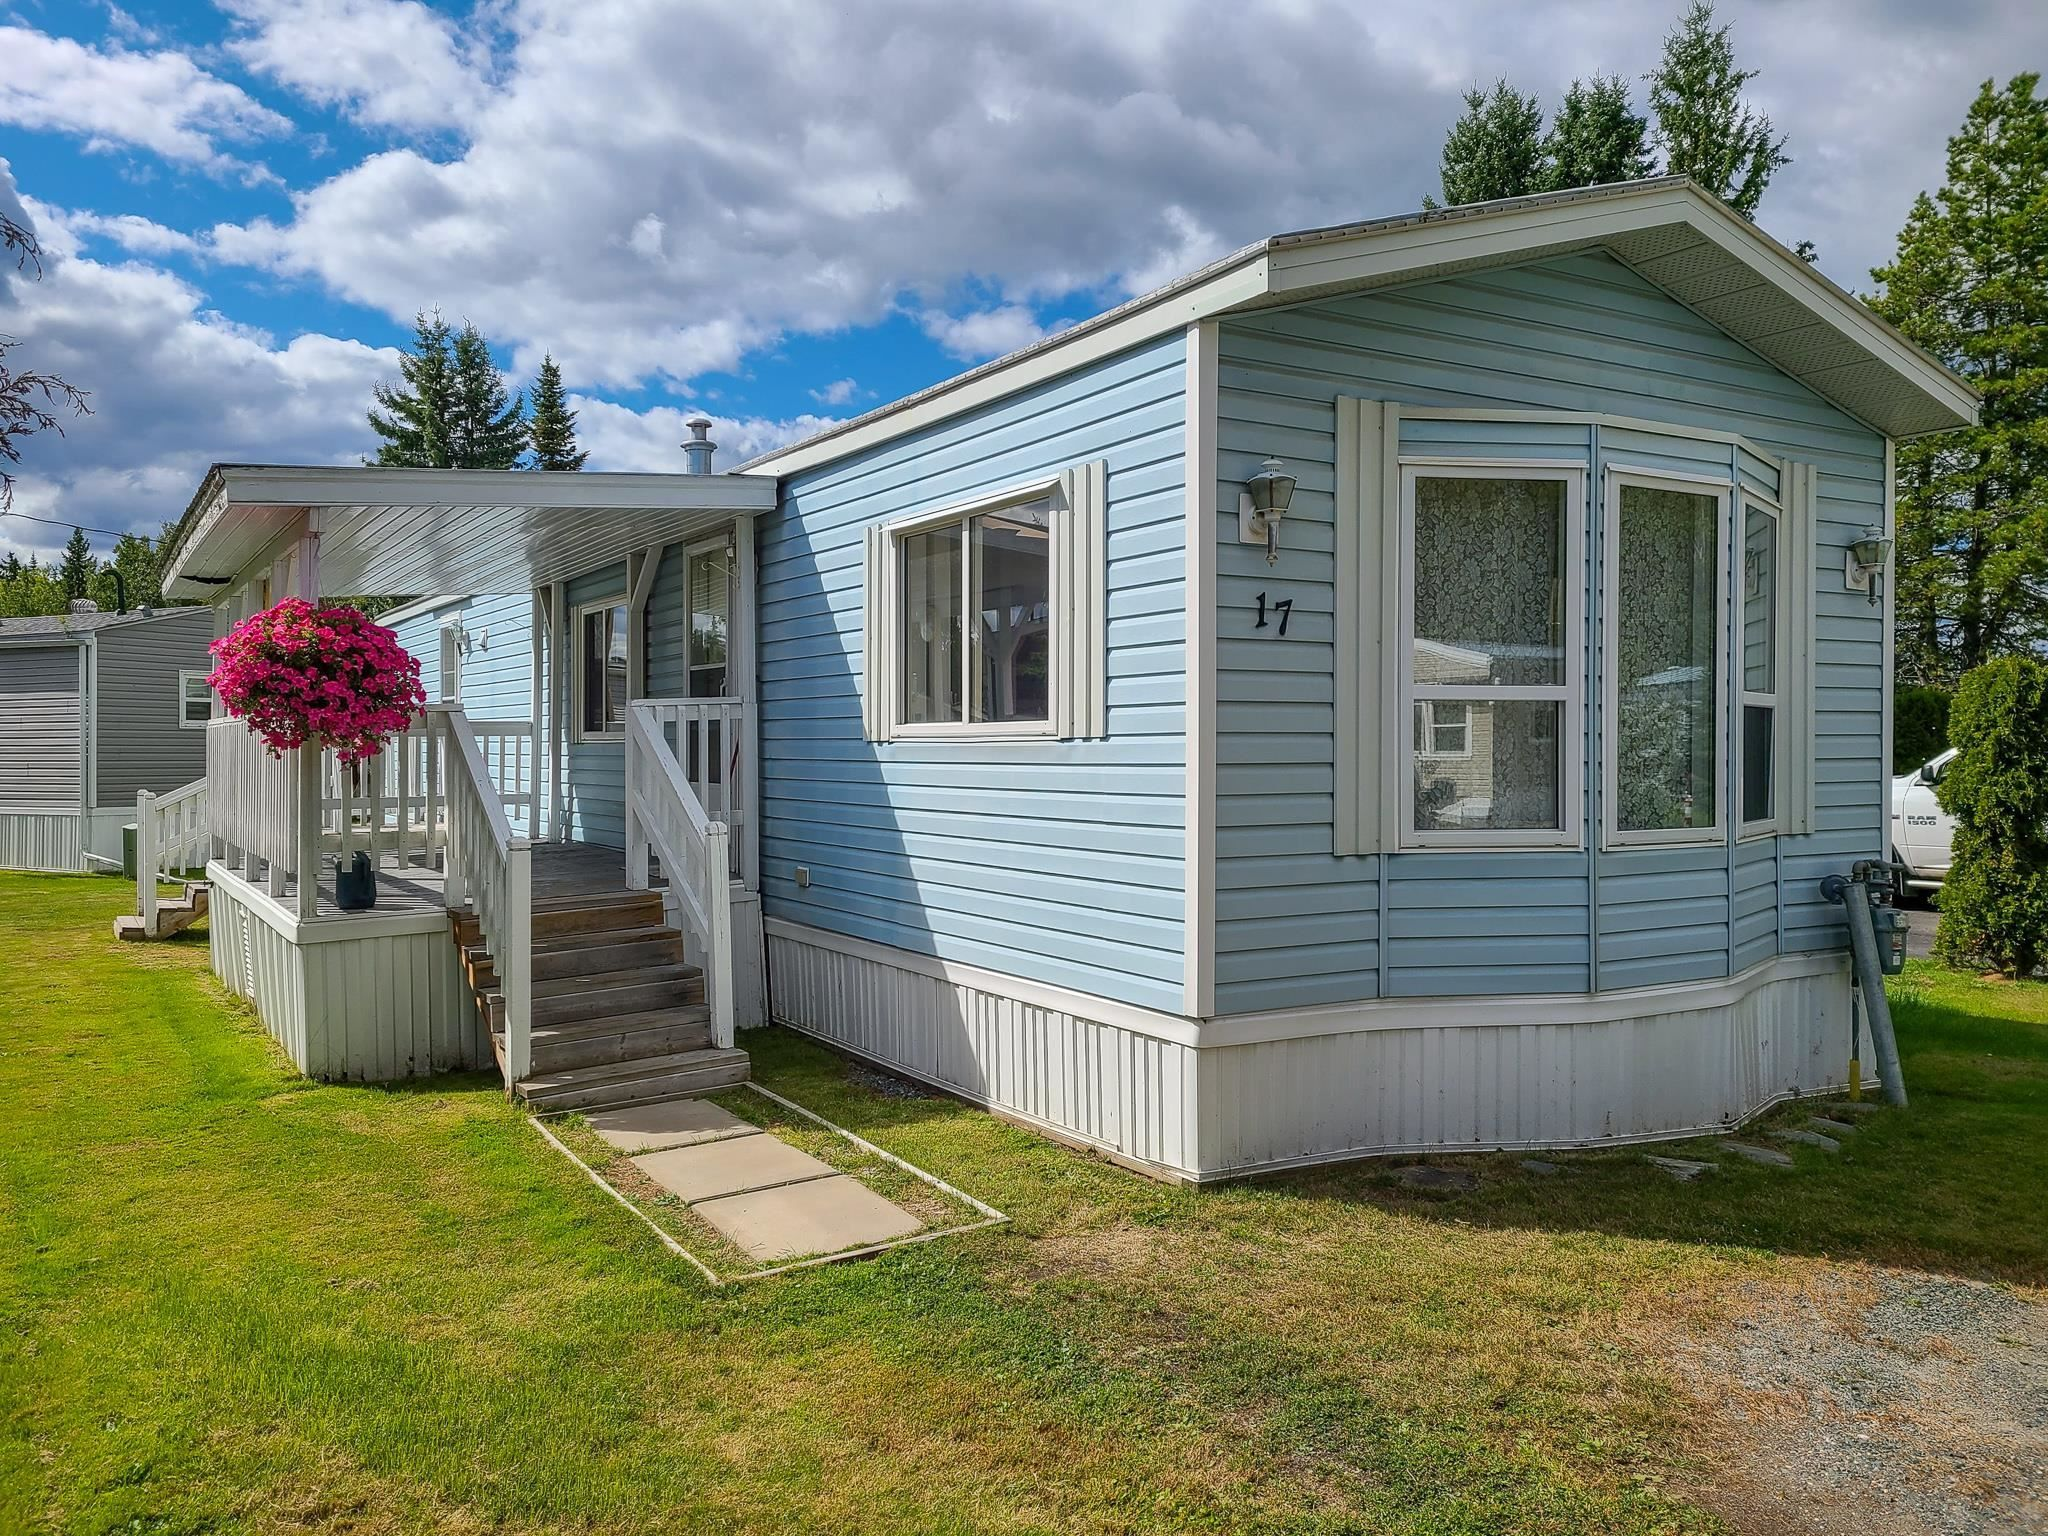 """Main Photo: 17 7817 HIGHWAY 97 S in Prince George: Sintich Manufactured Home for sale in """"Sintich Adult Mobile Home Park"""" (PG City South East (Zone 75))  : MLS®# R2614001"""